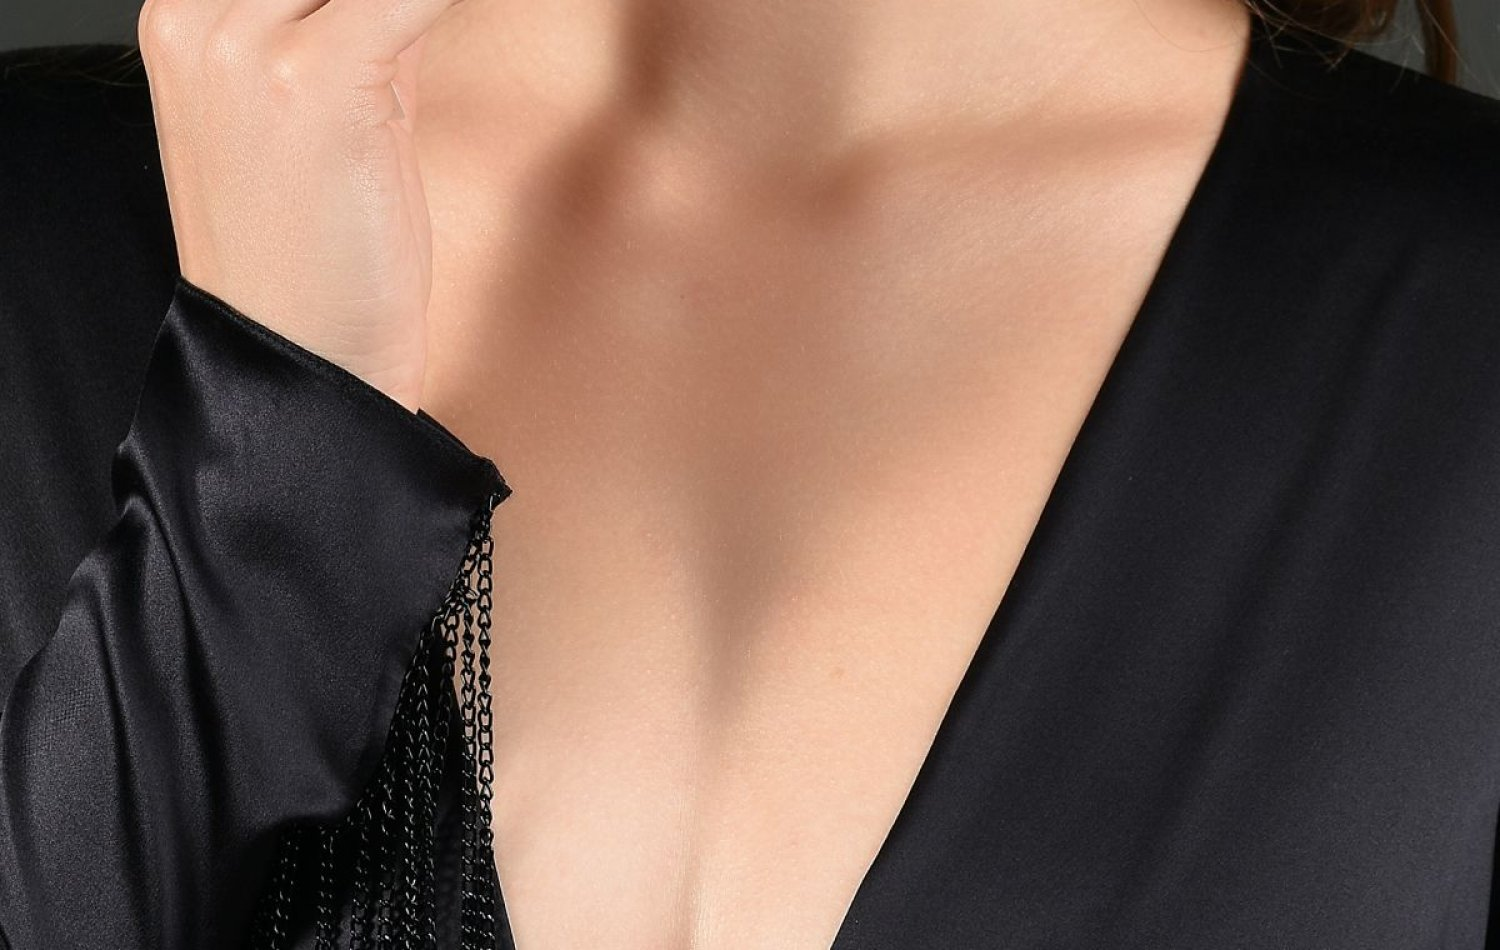 Cleavage shot for breast blogs